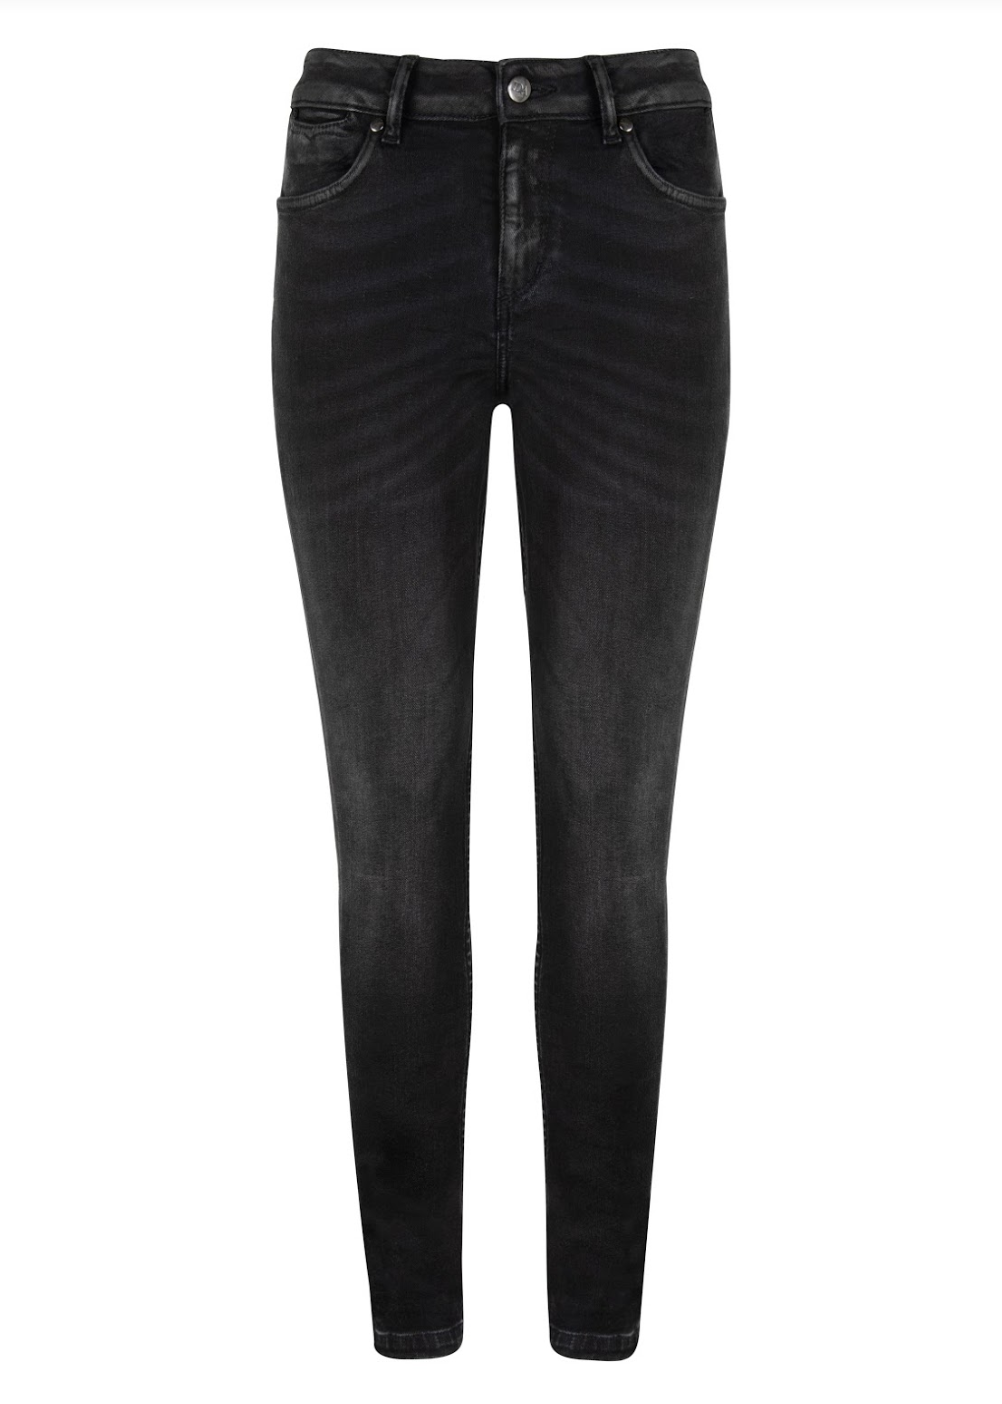 Rizzo High Top Ankle Skinny Jeans - Dark Days